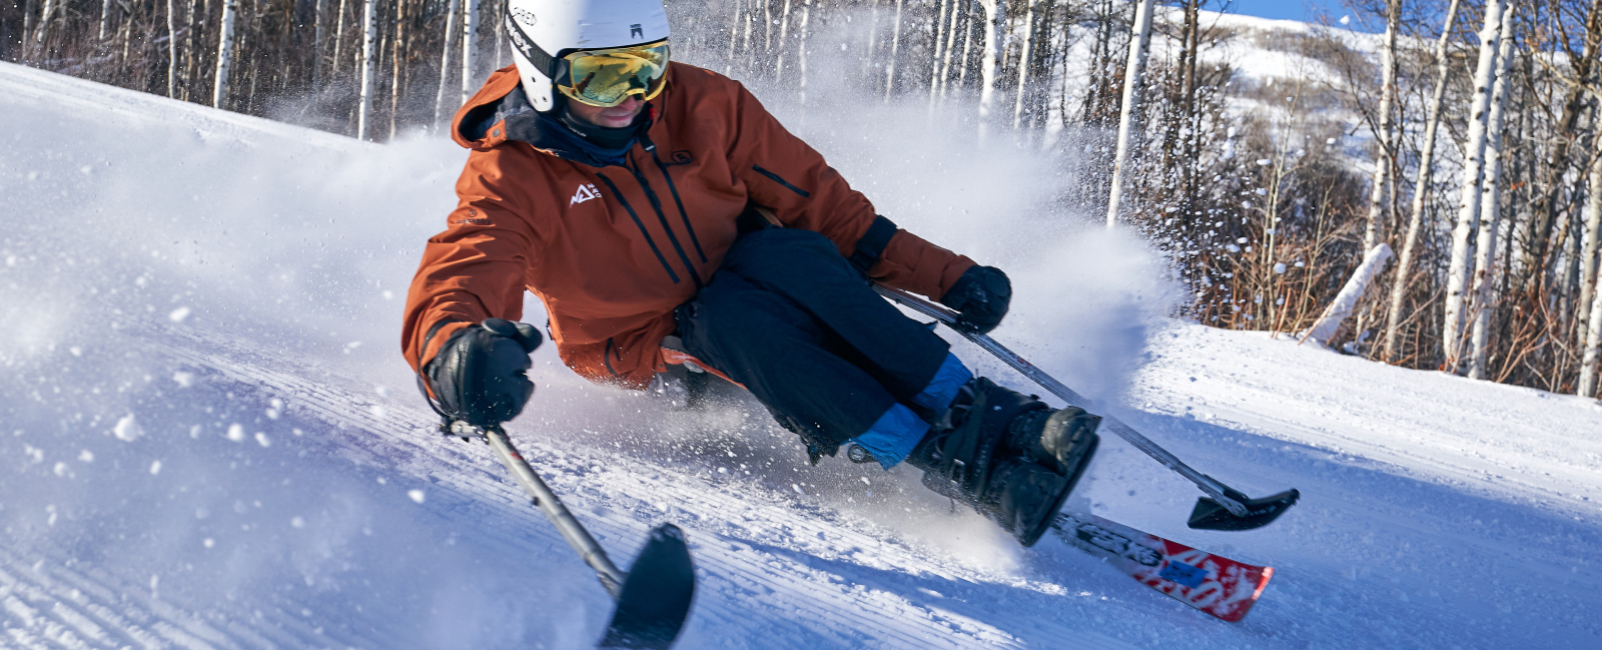 National Ability Center: Making The Greatest Snow on Earth Accessible to Everyone